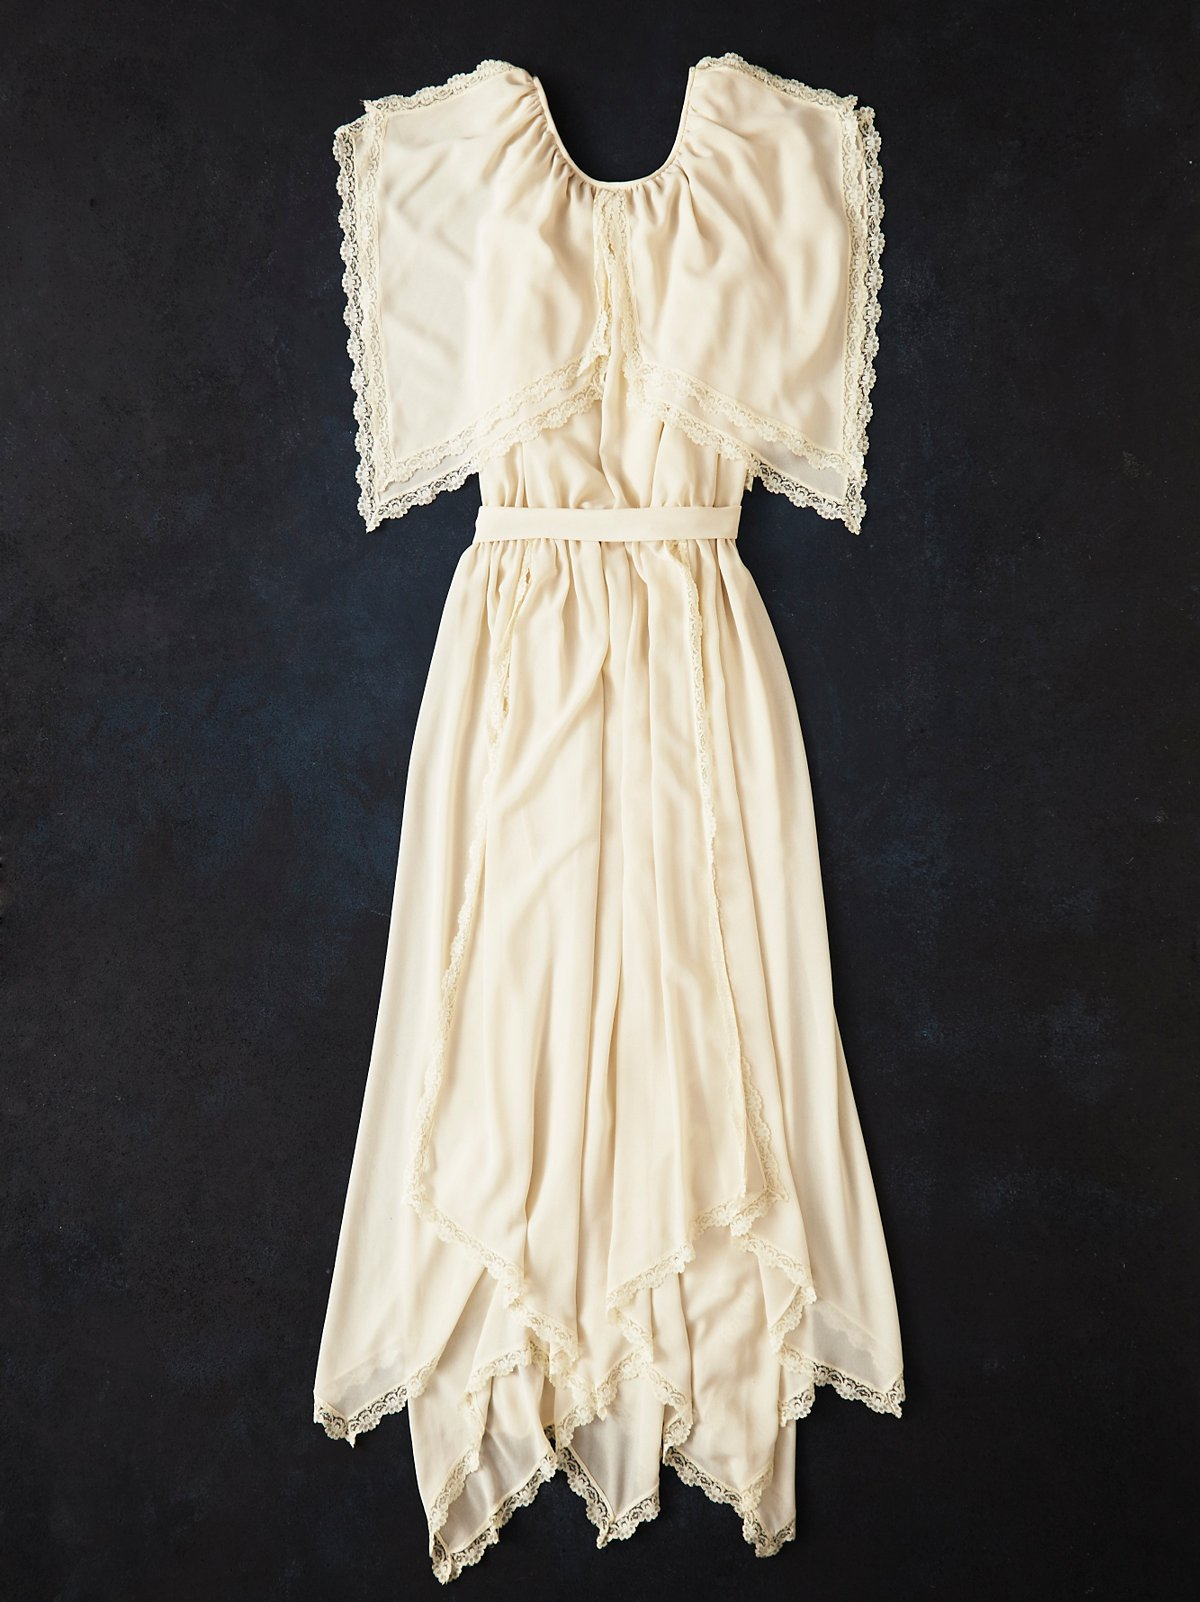 Vintage 1970s Chiffon Dress